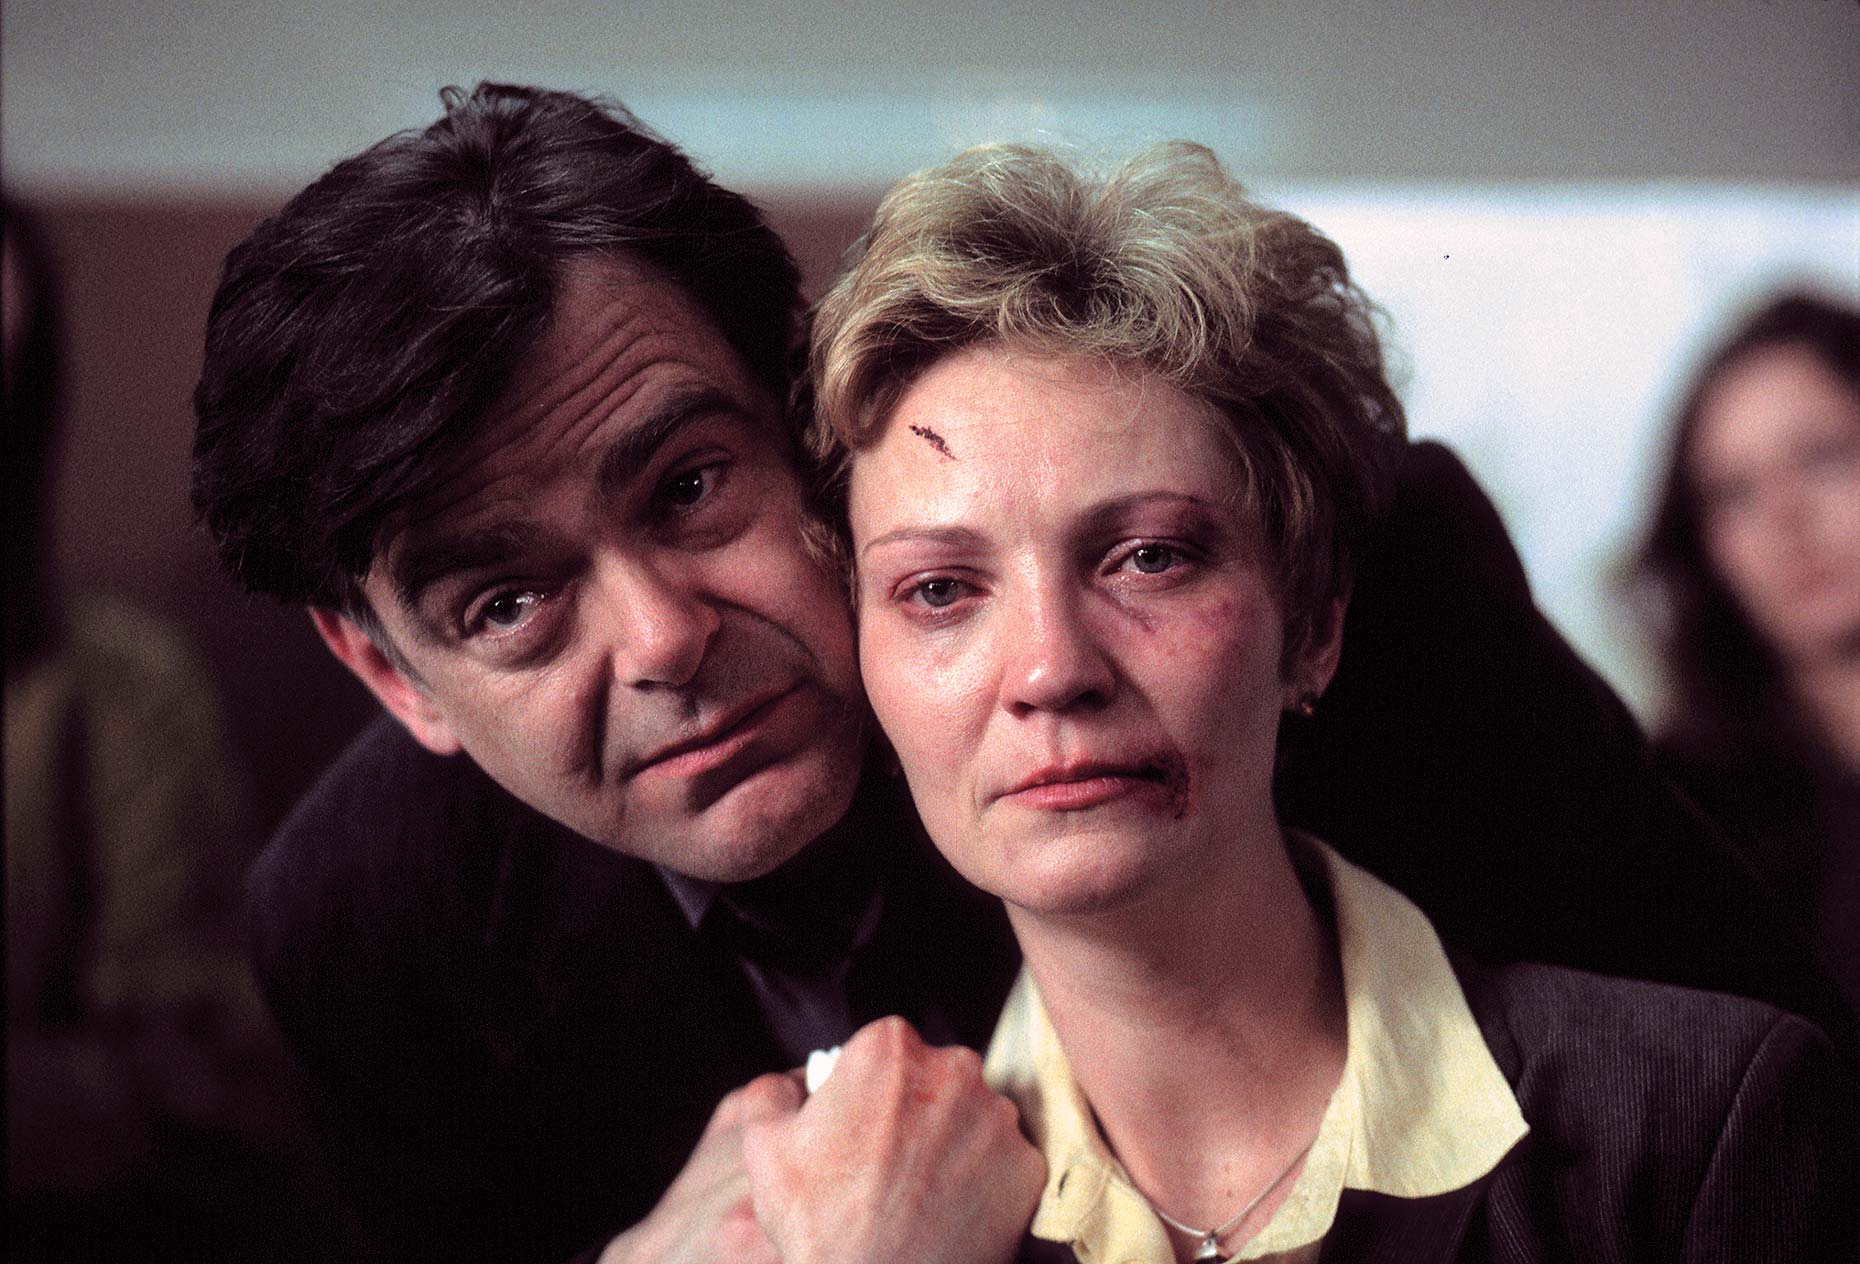 WHEN THE SKY FALLS Joan Allen and Kevin McNally